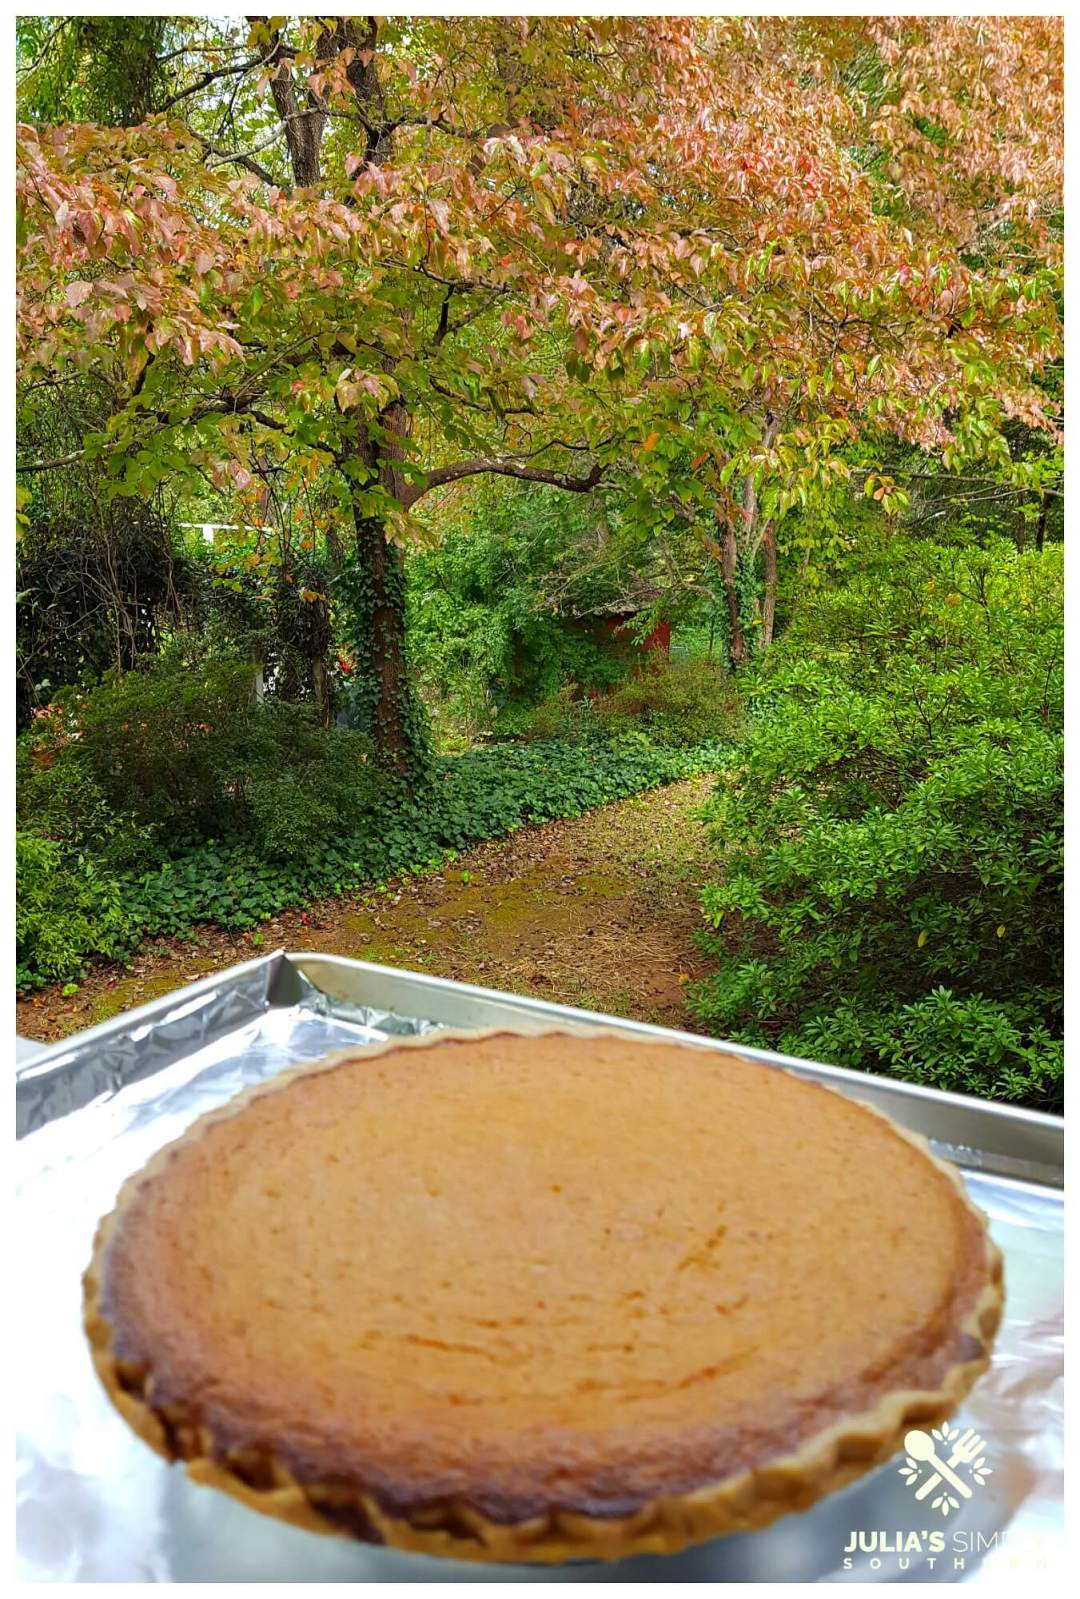 Homemade sweet potato pie cooling on a Southern porch during fall